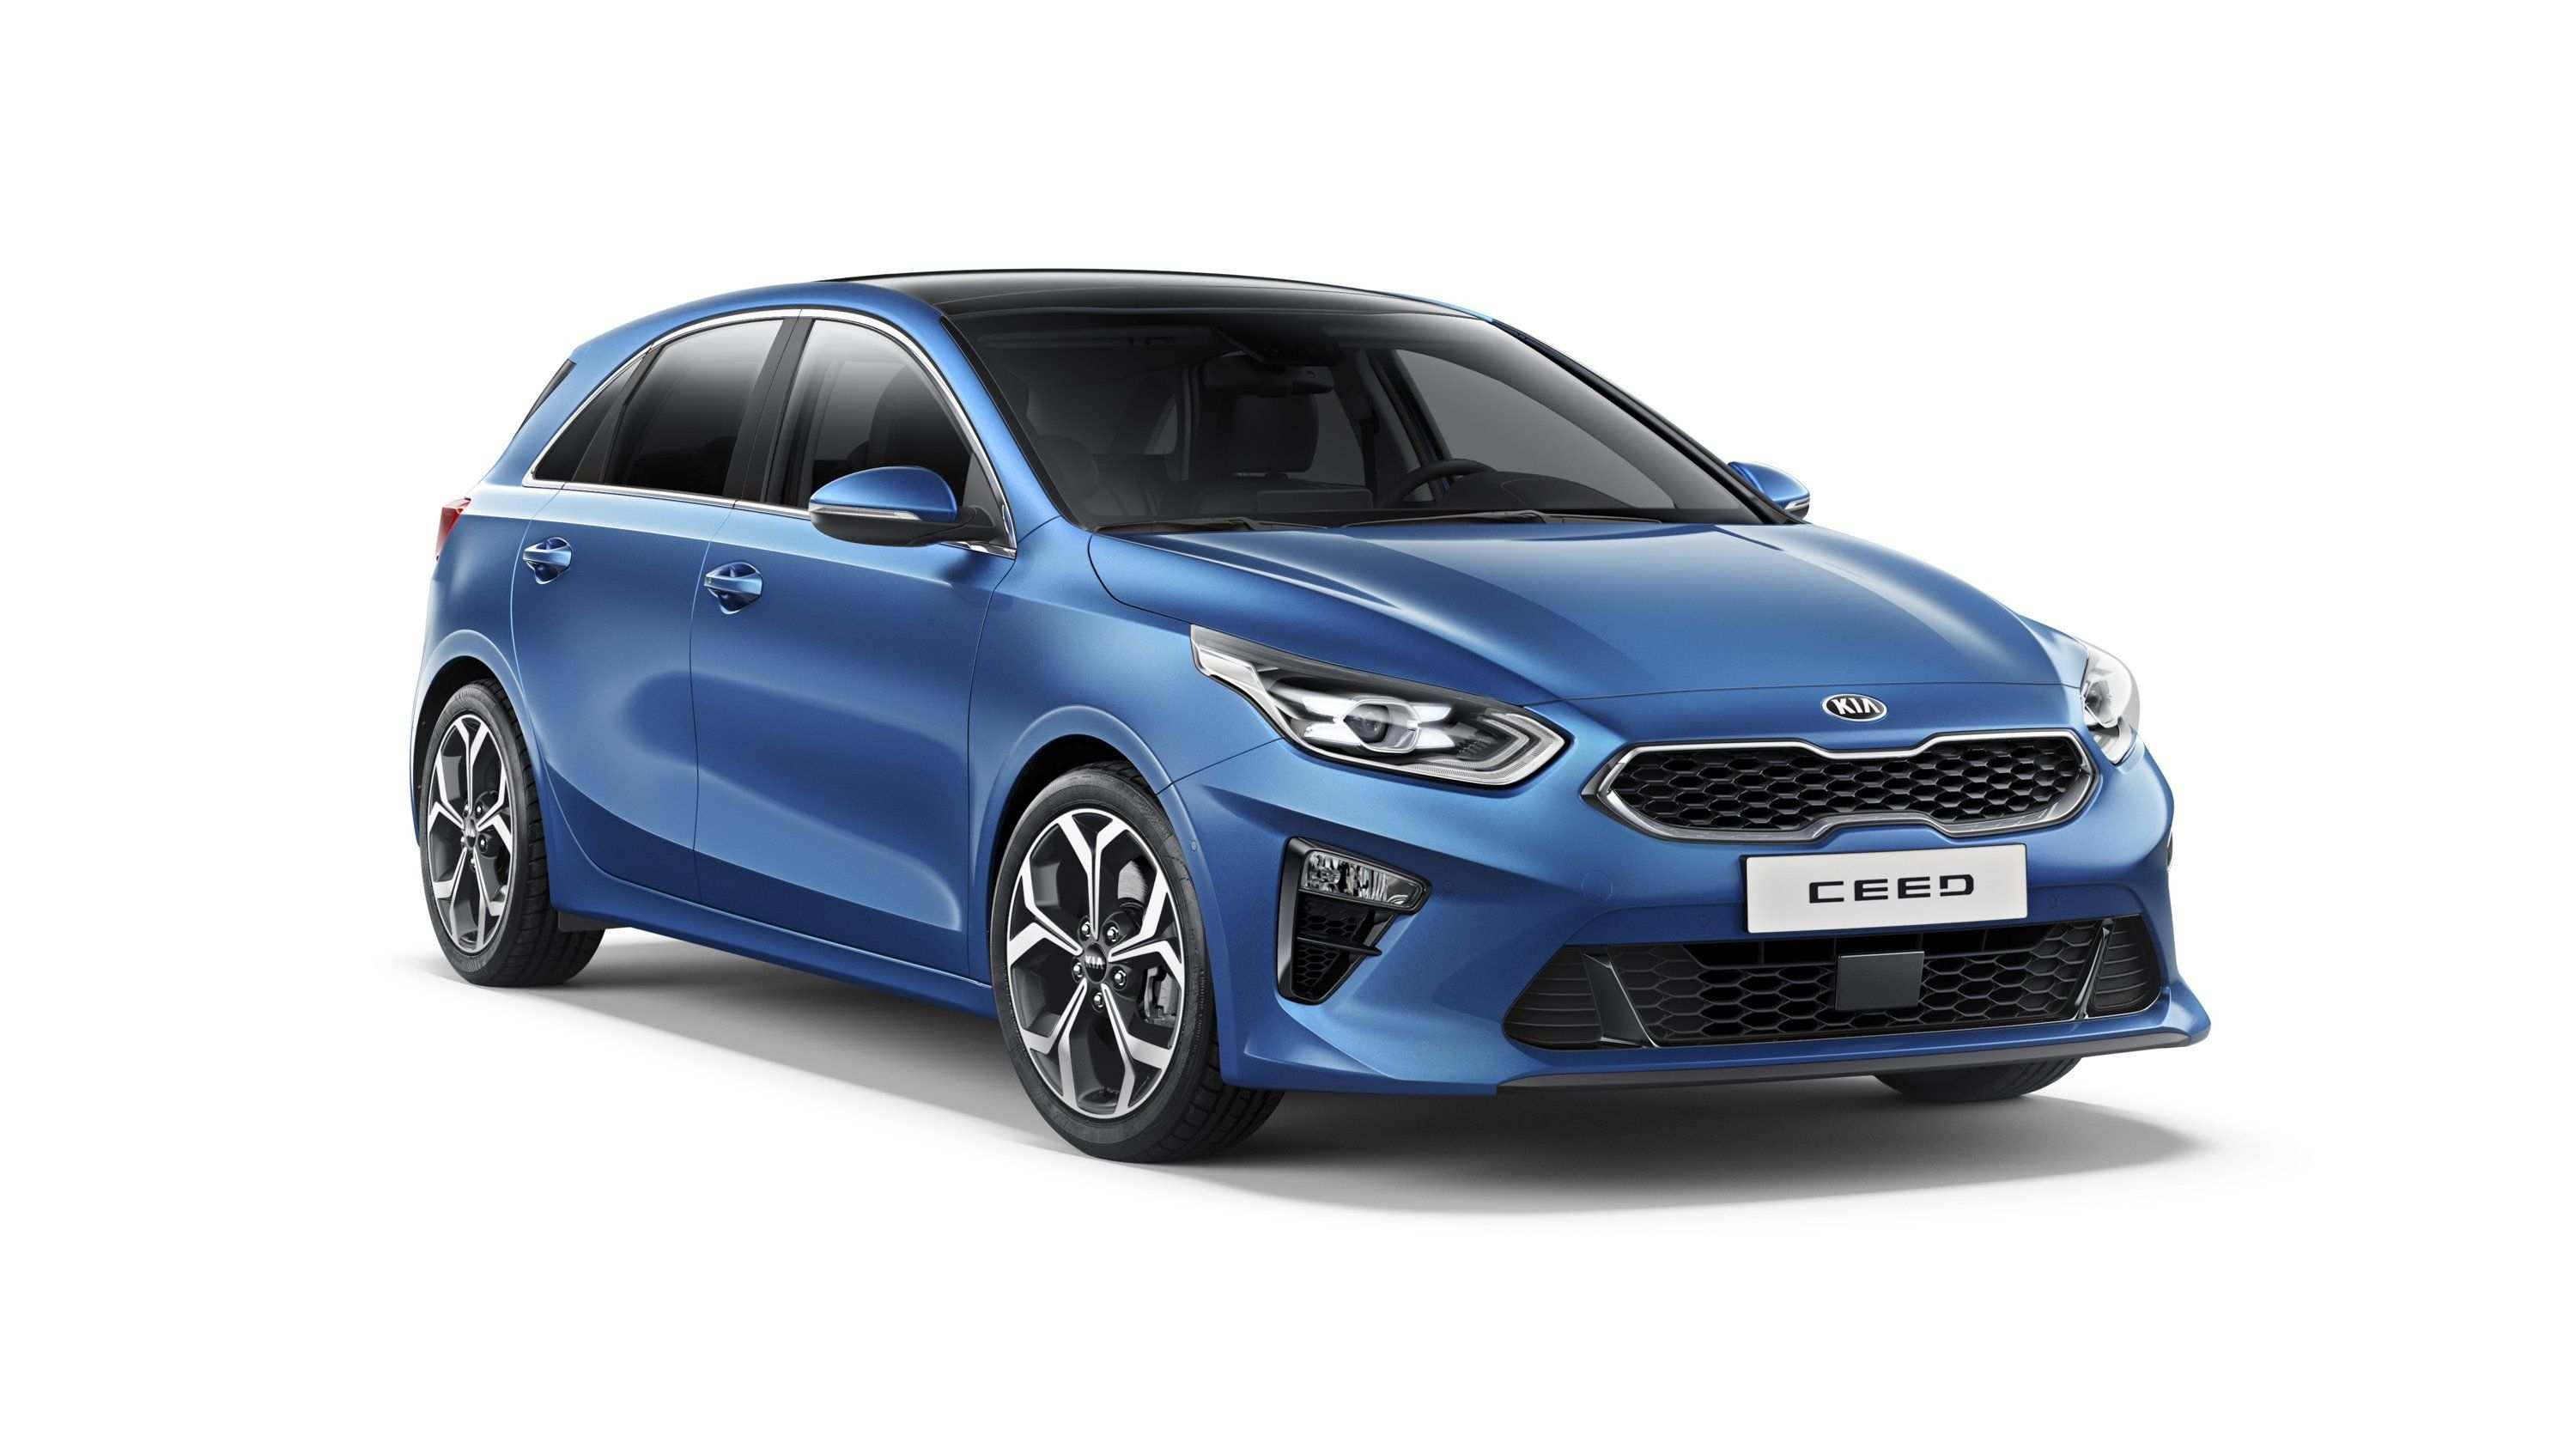 93 A Kia Venga 2019 Price And Release Date